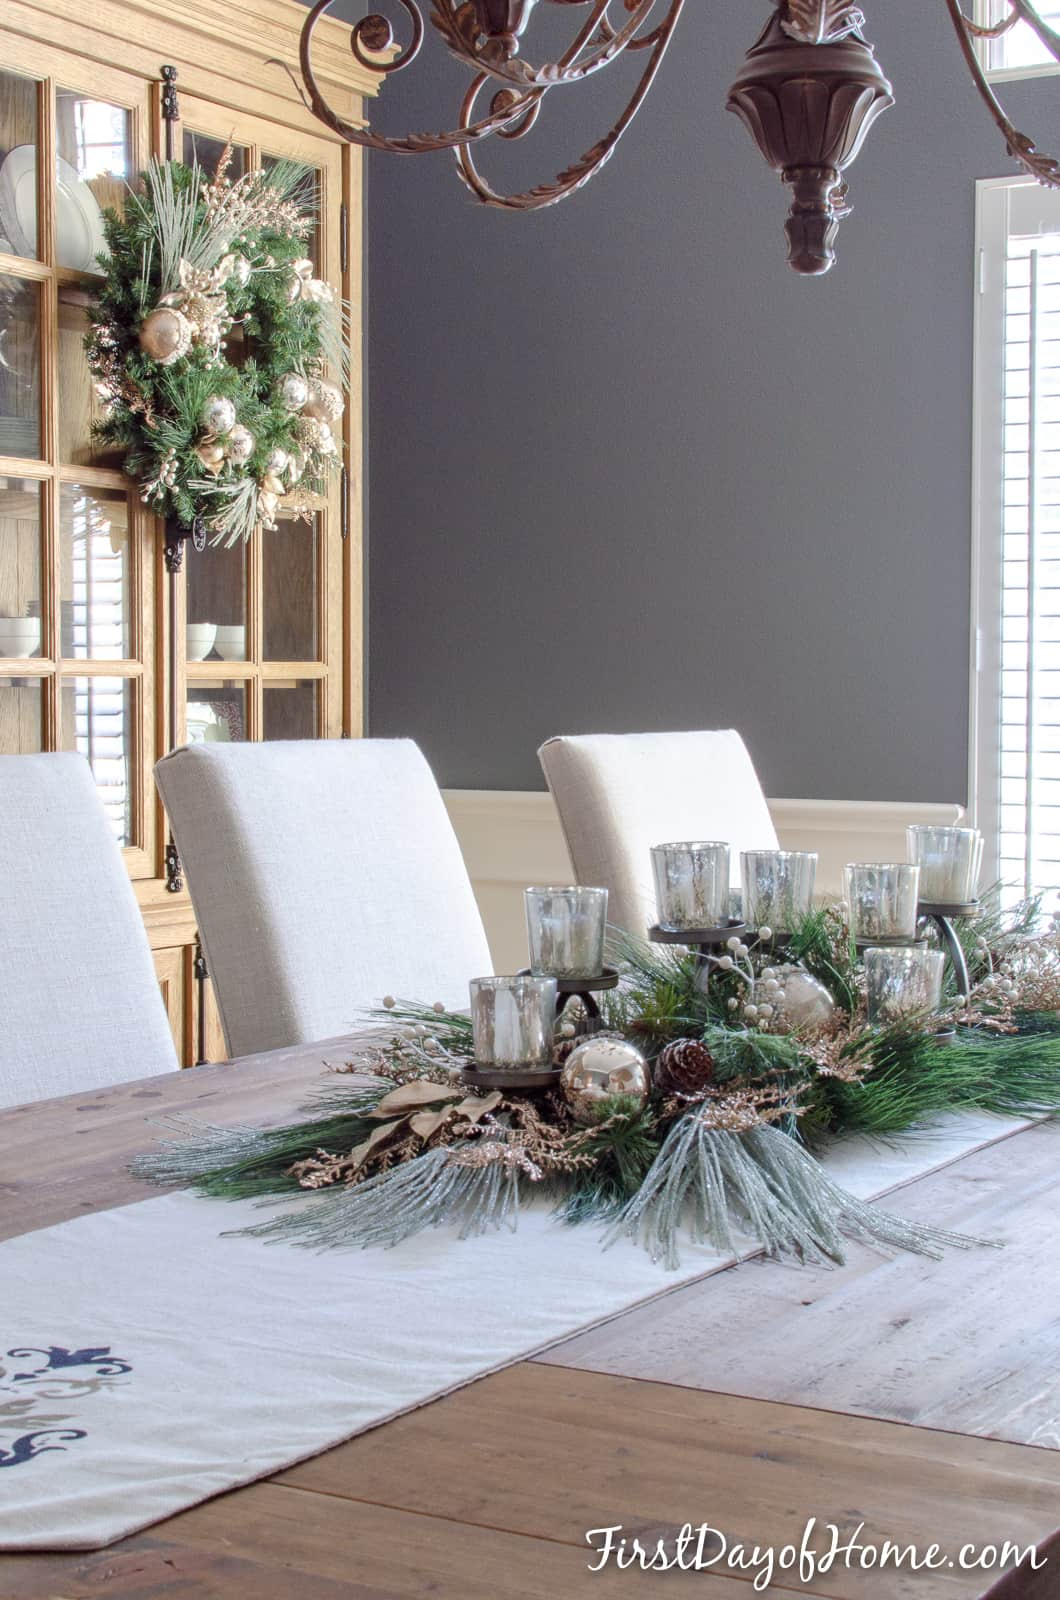 DIY holiday centerpiece with mercury glass candle holders and mixed metallic ornaments and greenery.